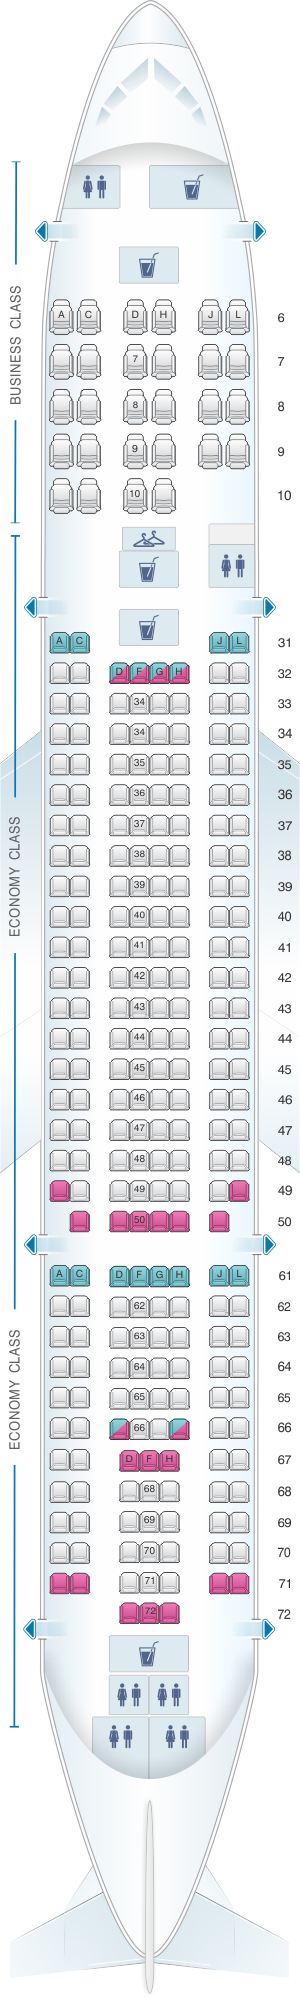 Seat map for China Eastern Airlines Airbus A300 600 config.2